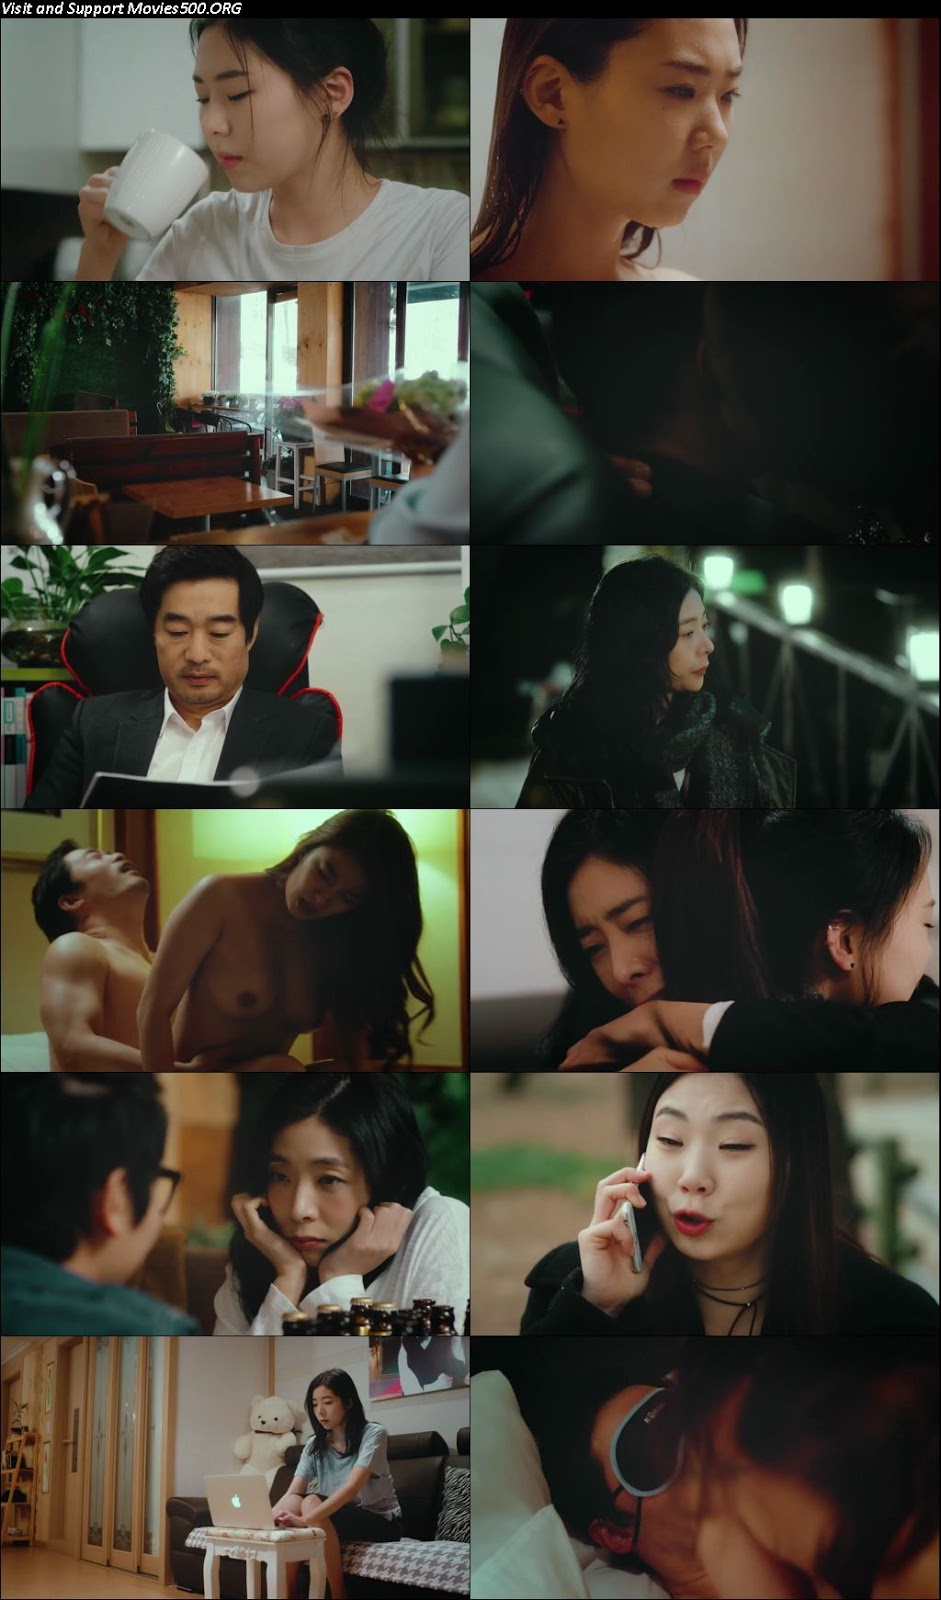 The Sisters's Scandal 2017 Adult 18+ Movie HDRip 720P 600MB at 9966132.com